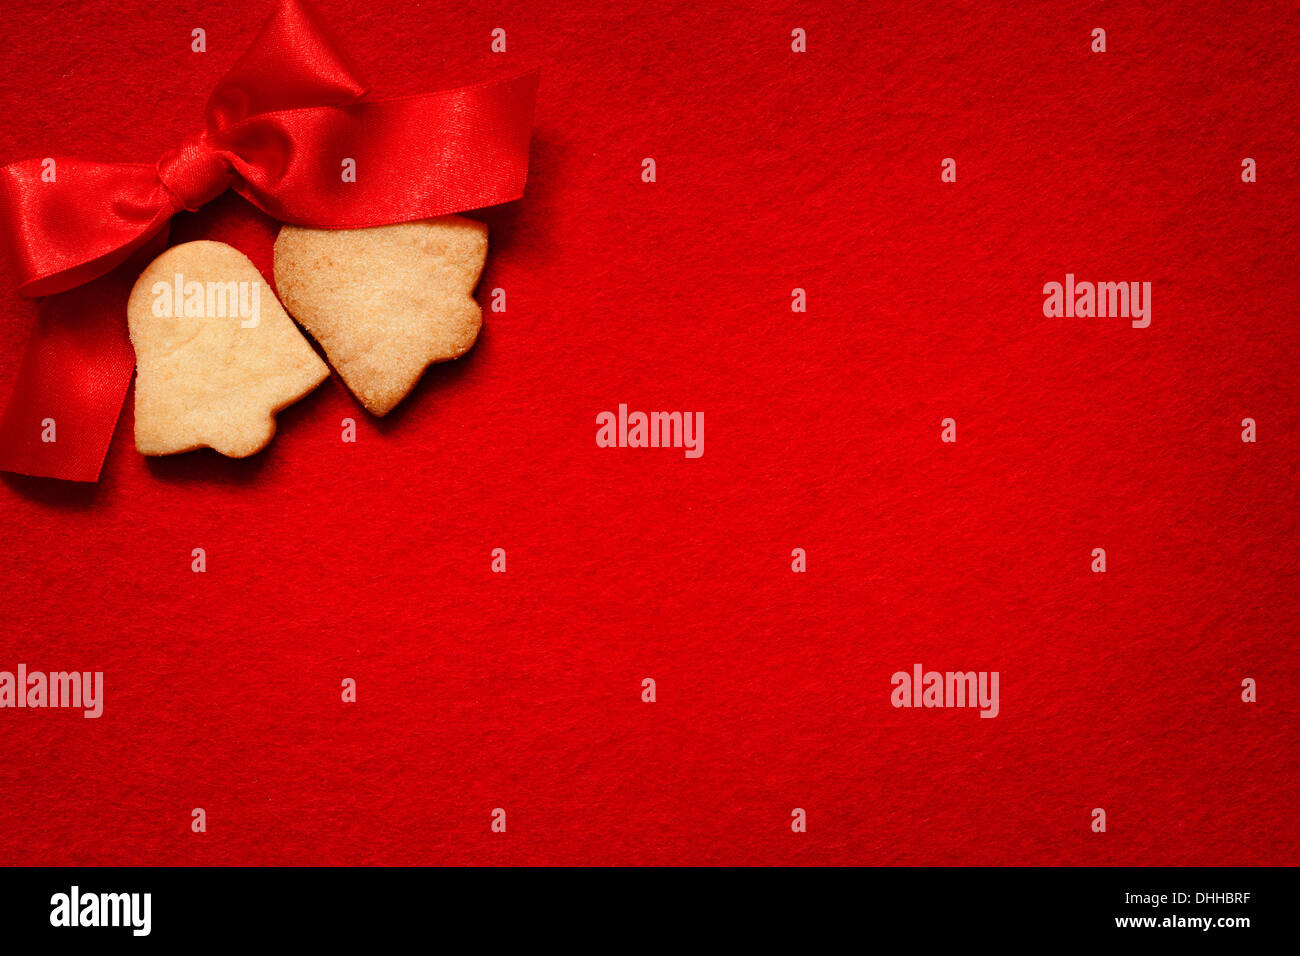 Christmas abstract background with cookies on red fabric - Stock Image